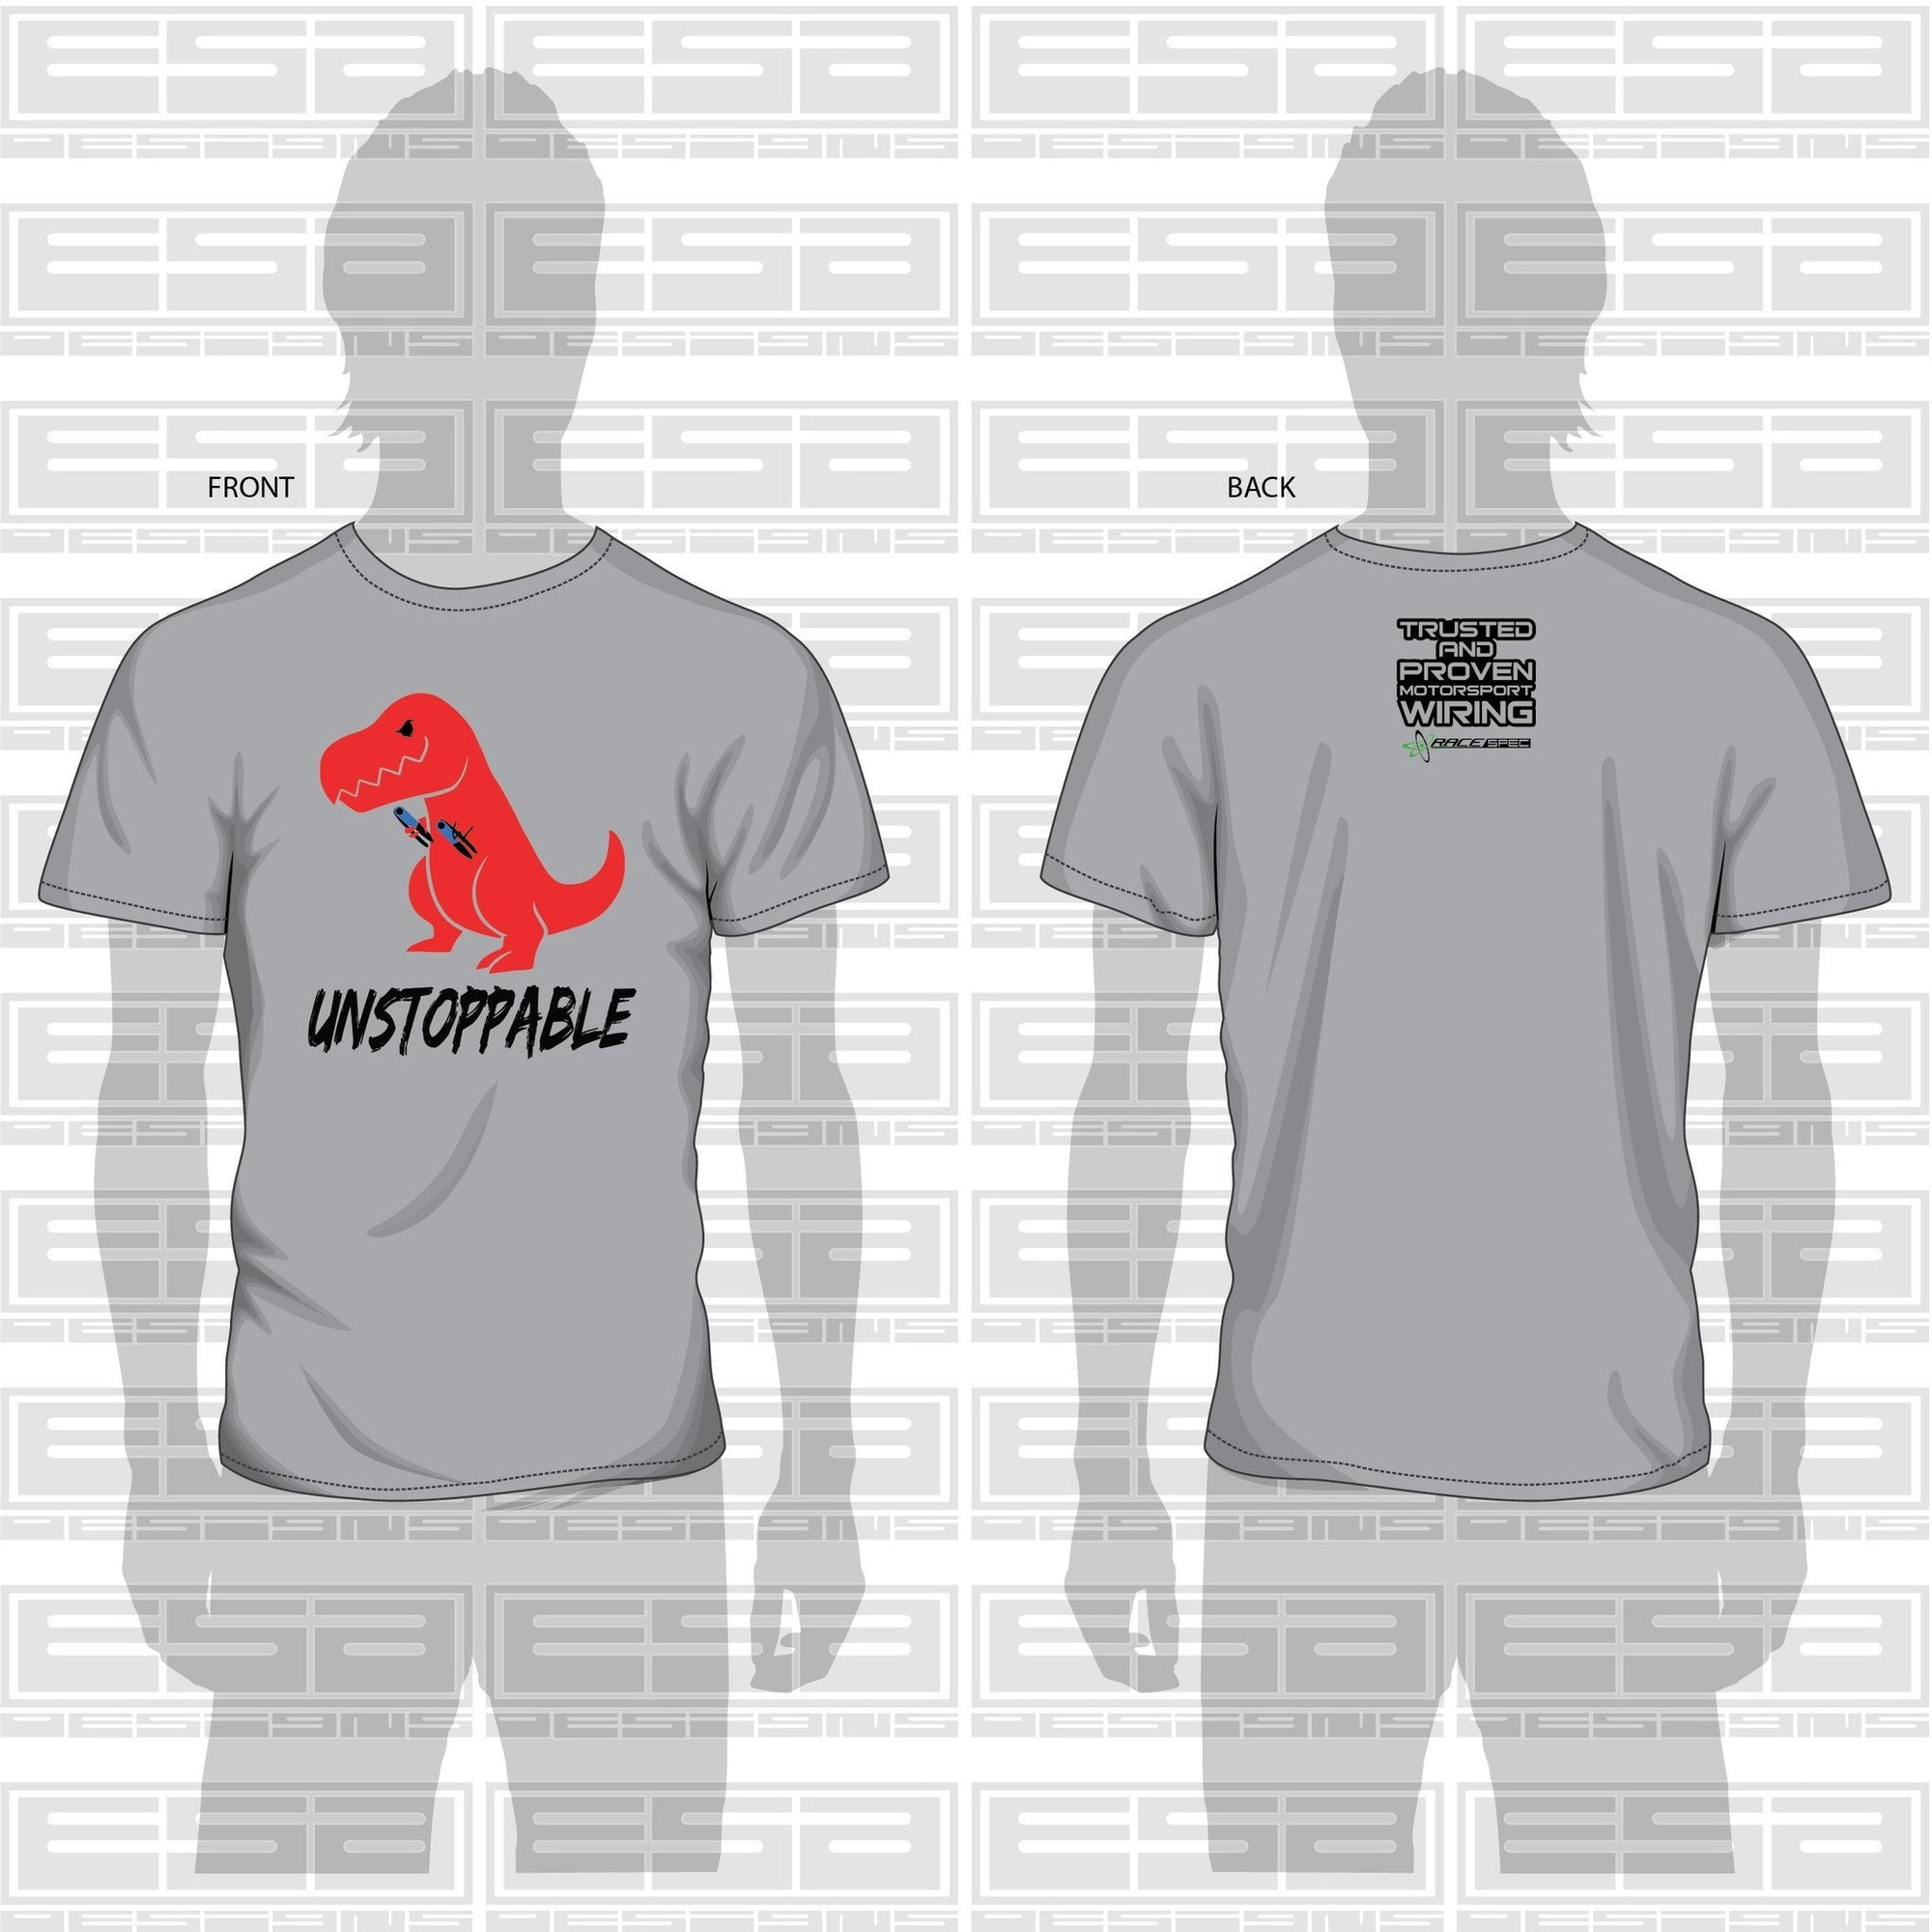 Swag - Race Spec 2016 T-Shirt - 'UNSTOPPABLE'